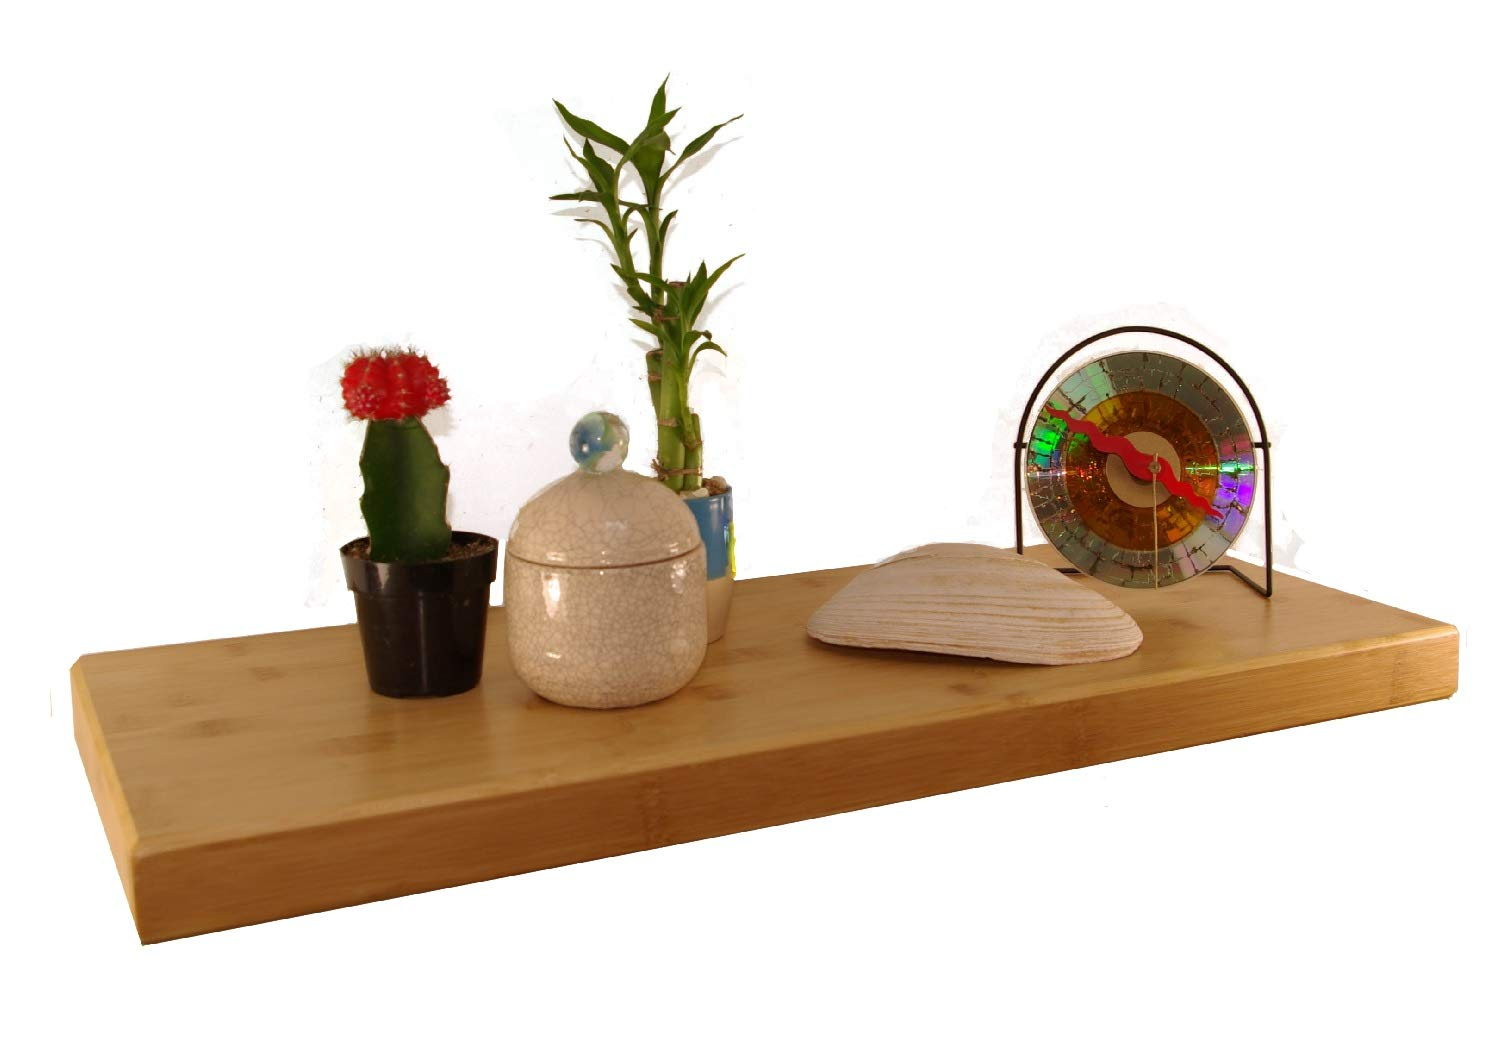 """Pyllo Bamboo Floating Shelf - Floating Wall Shelves with Hidden Bracket - Made from 100% Bamboo - 23 5/8"""" X 9 1/4"""" X 1 1/2"""" - Easy Installation - PREMIUM QUALITY ECO-FRIENDLY BAMBOO SHELF - NO MDF (Particle Board) : Perfect For Office, Kitchen, Bedroom, Bathroom, Nursery, or Anywhere Around Your Home. EXTRA WIDE 9 1/2 Inches , Makes A Great Display Shelf For Books, Pictures, or Collectibles. The Durable Natural Carbonized Finish is Easy to Clean and Will Last For Years. EASILY HOLDS UP TO 25 POUNDS - With Our Wall Mounted Shelves, Only One Single Hidden Bracket Is Needed, Which Makes For EASY INSTALLATION! No Exposed Shelf Brackets To Get In Your Way. Hidden Mounting Bracket Gives a Floating Shelf Appearance... EASY TO FOLLOW INSTRUCTIONS, with Drywall Anchors, That Require NO DRILLING and Screws Included. BAMBOO IS NATURALLY ANTIBACTERIAL, ANTIMICROBIAL and WATER RESISTANT, which makes them Perfect for Bathrooms and Nurseries. These Floating Wall Shelves are not only Beautiful, but Durable as well. Bamboo will hold up to dings and spills. Our Bamboo comes from sustainable forests. - wall-shelves, living-room-furniture, living-room - 61S86O11GAL -"""